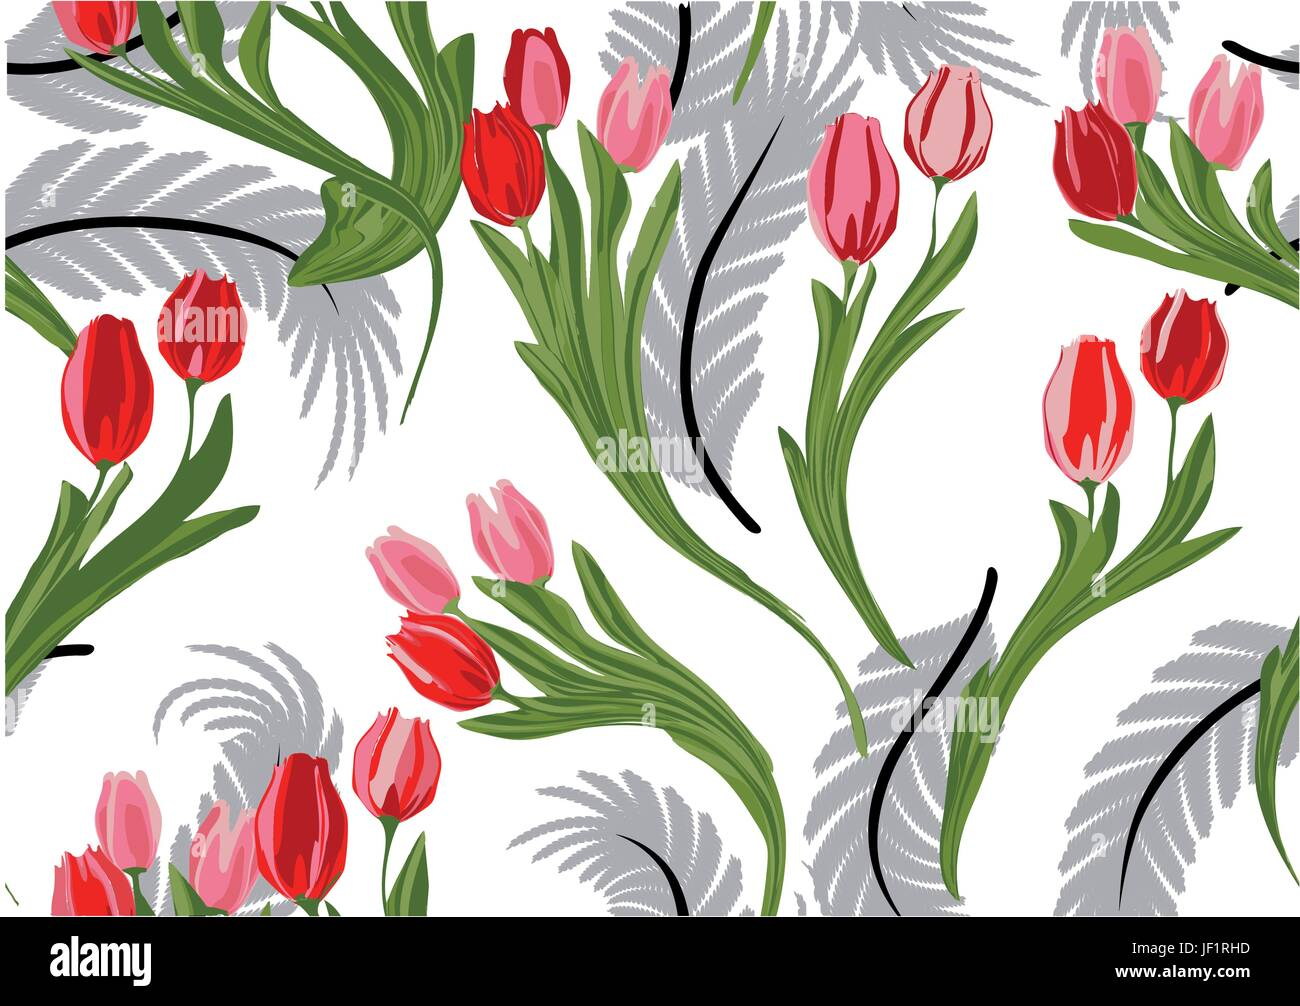 leaf, flower, plant, summer, summerly, tulips, spring, illustration, - Stock Vector